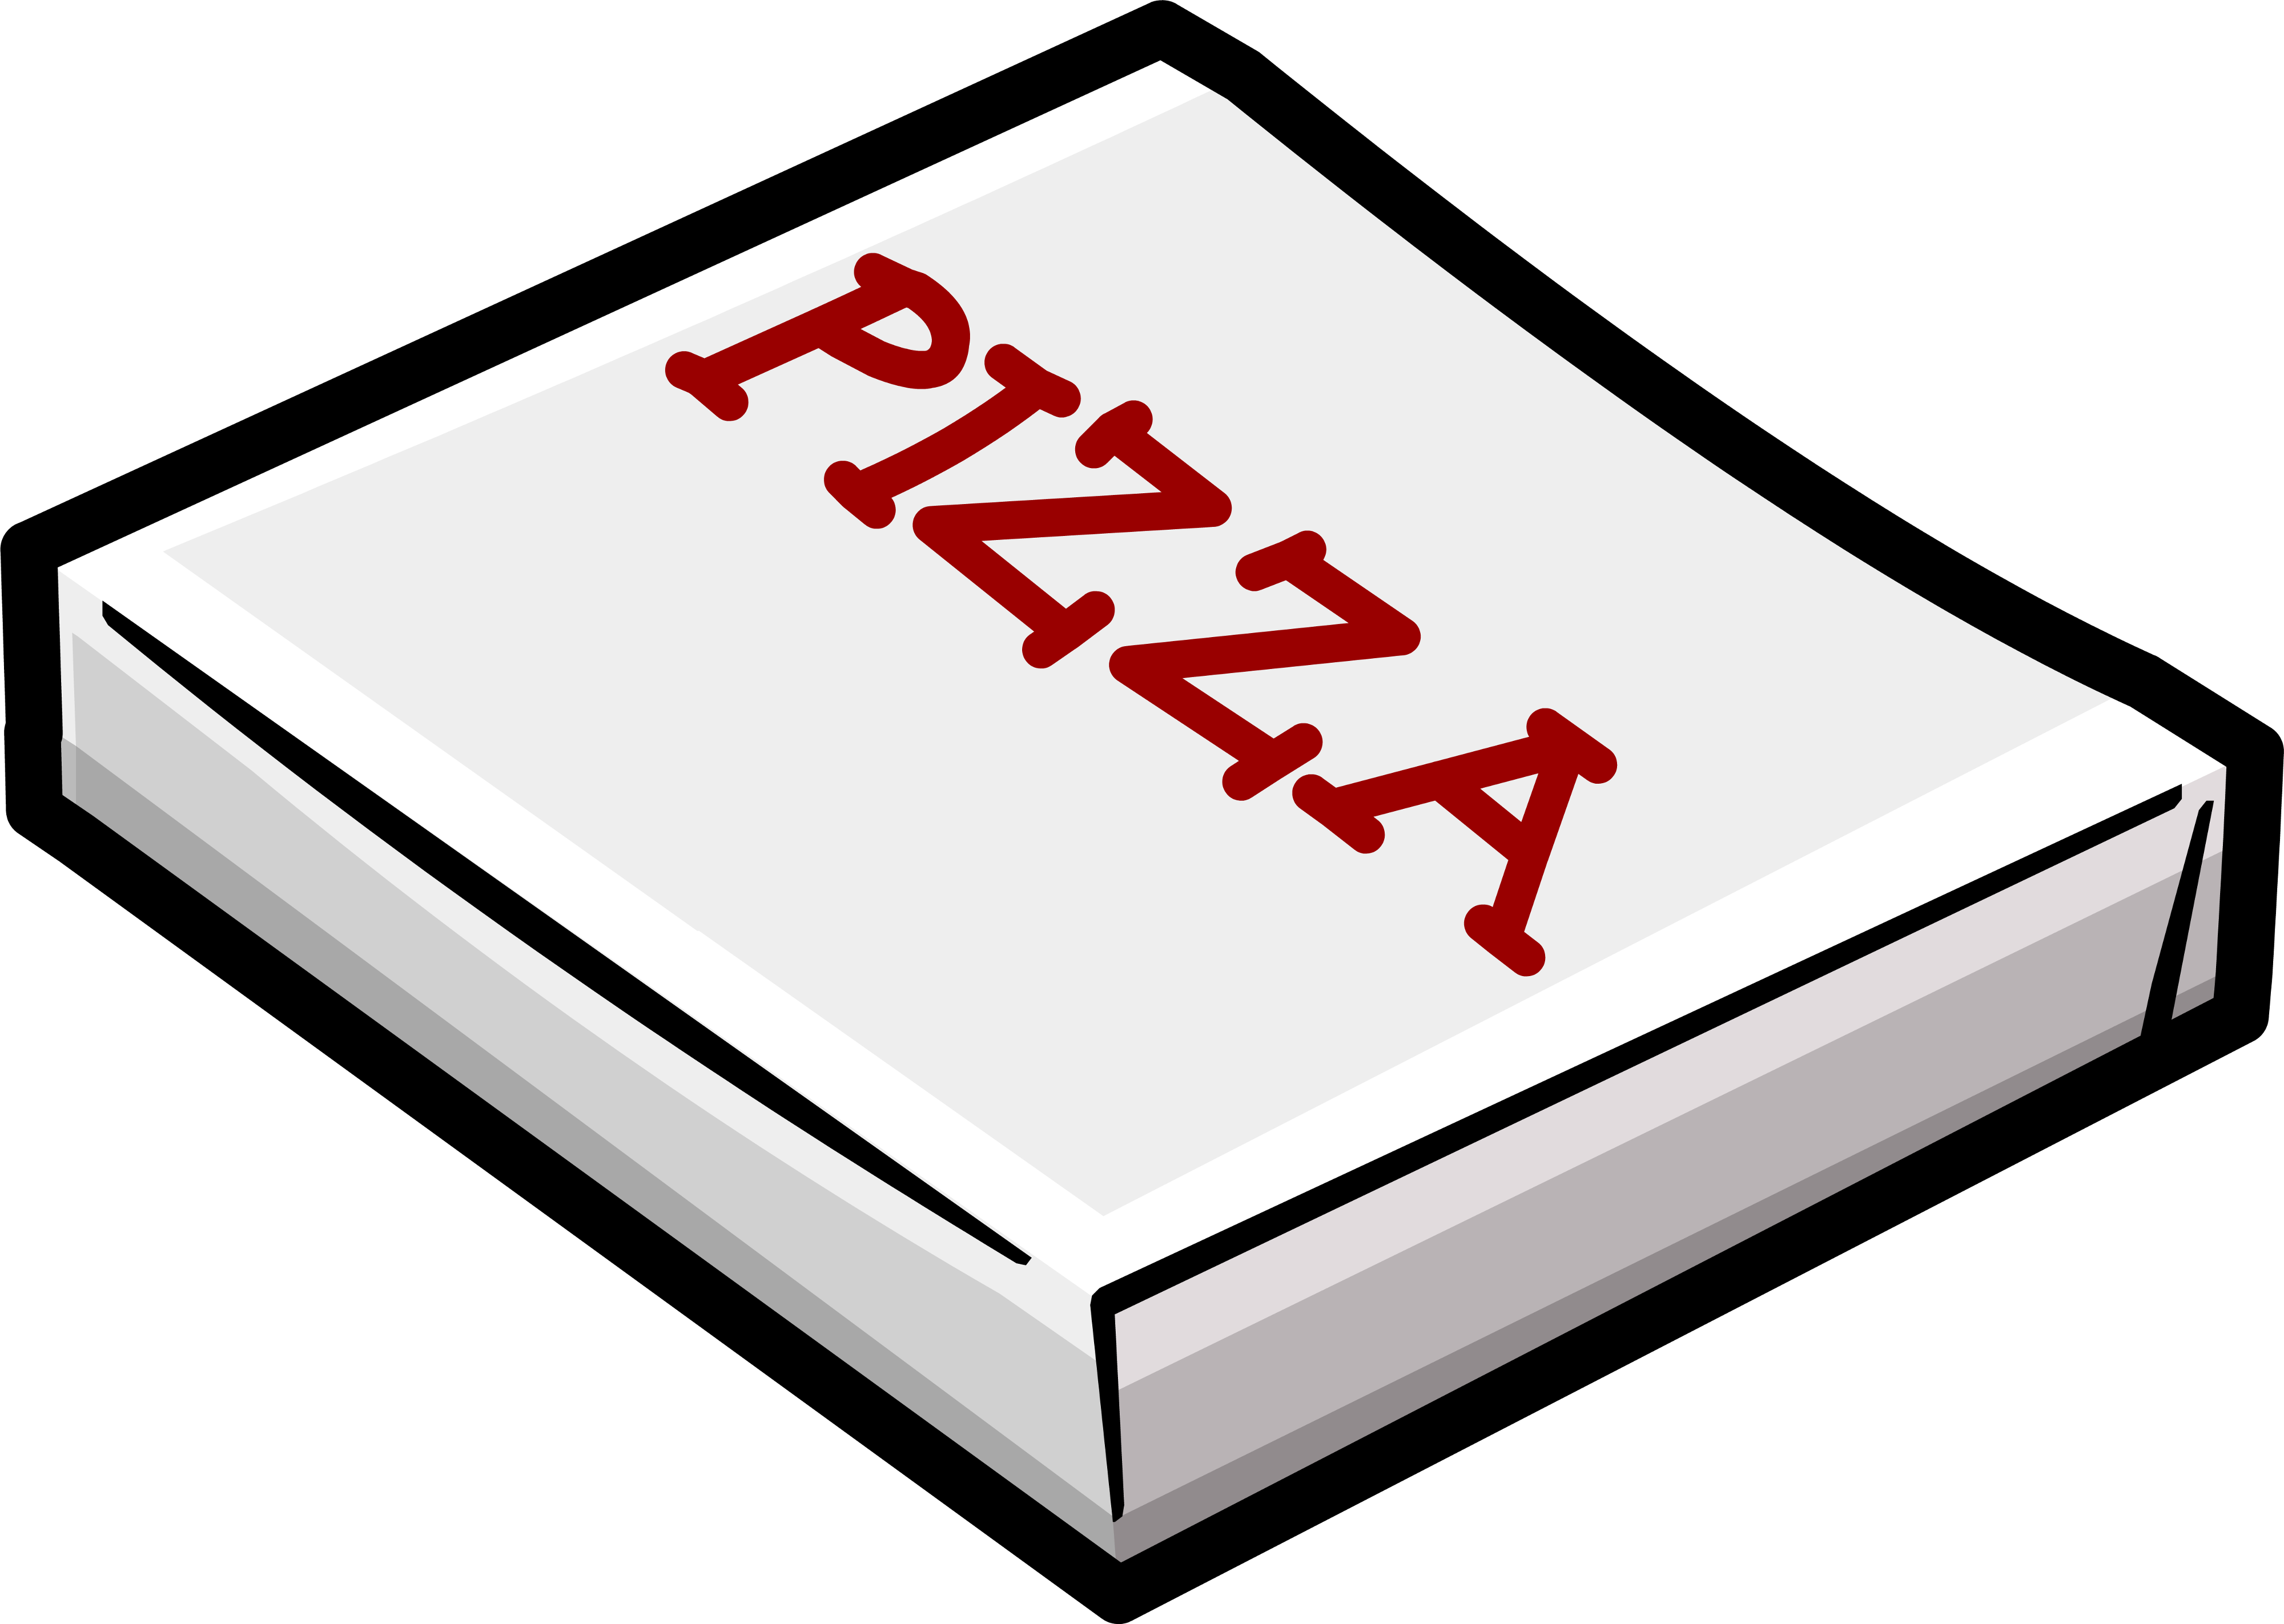 Stack of pizza boxes png. Box clipart ready to